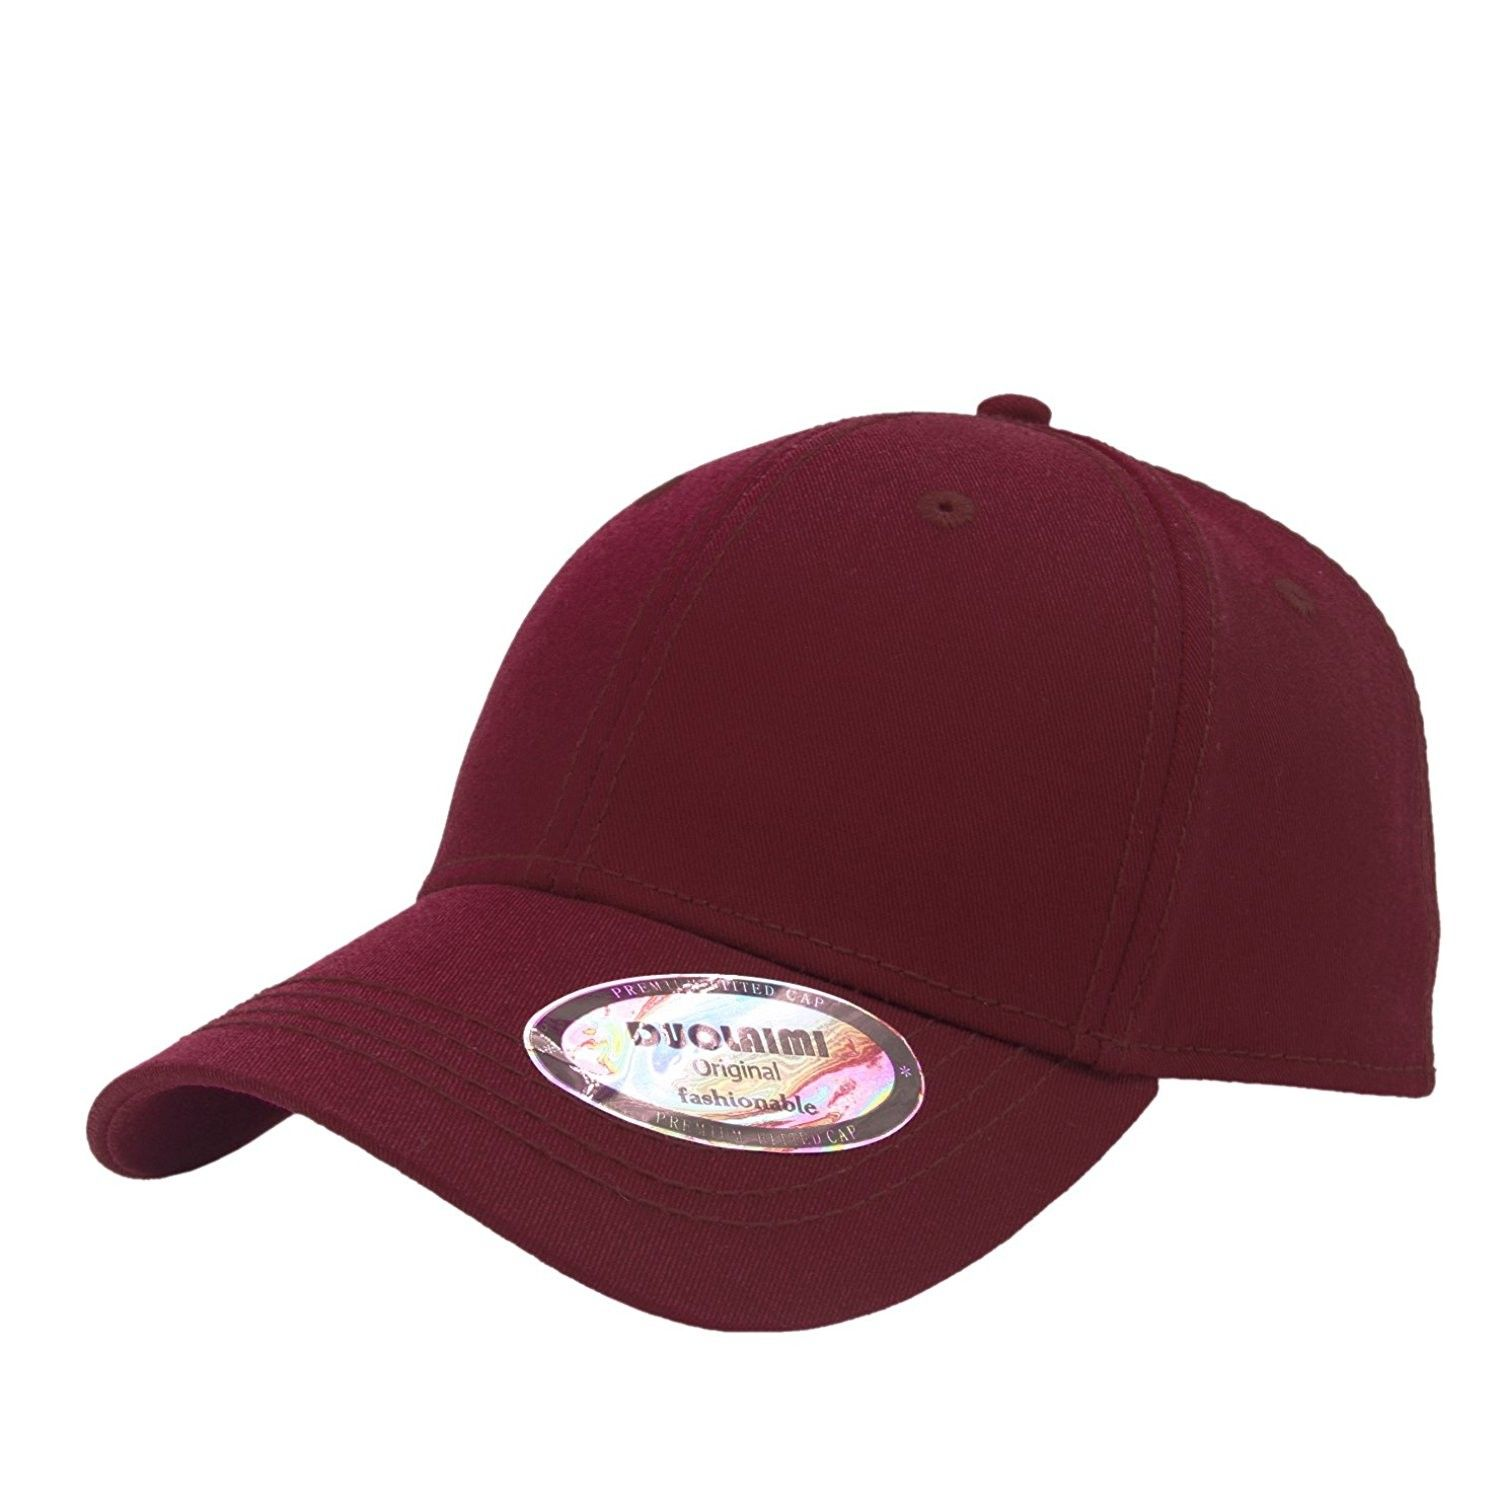 Plain Baseball Cap With Metal Button For Unisex Adult - Red - C812BRQLUFV -  Hats   Caps ecb8b4e72c4